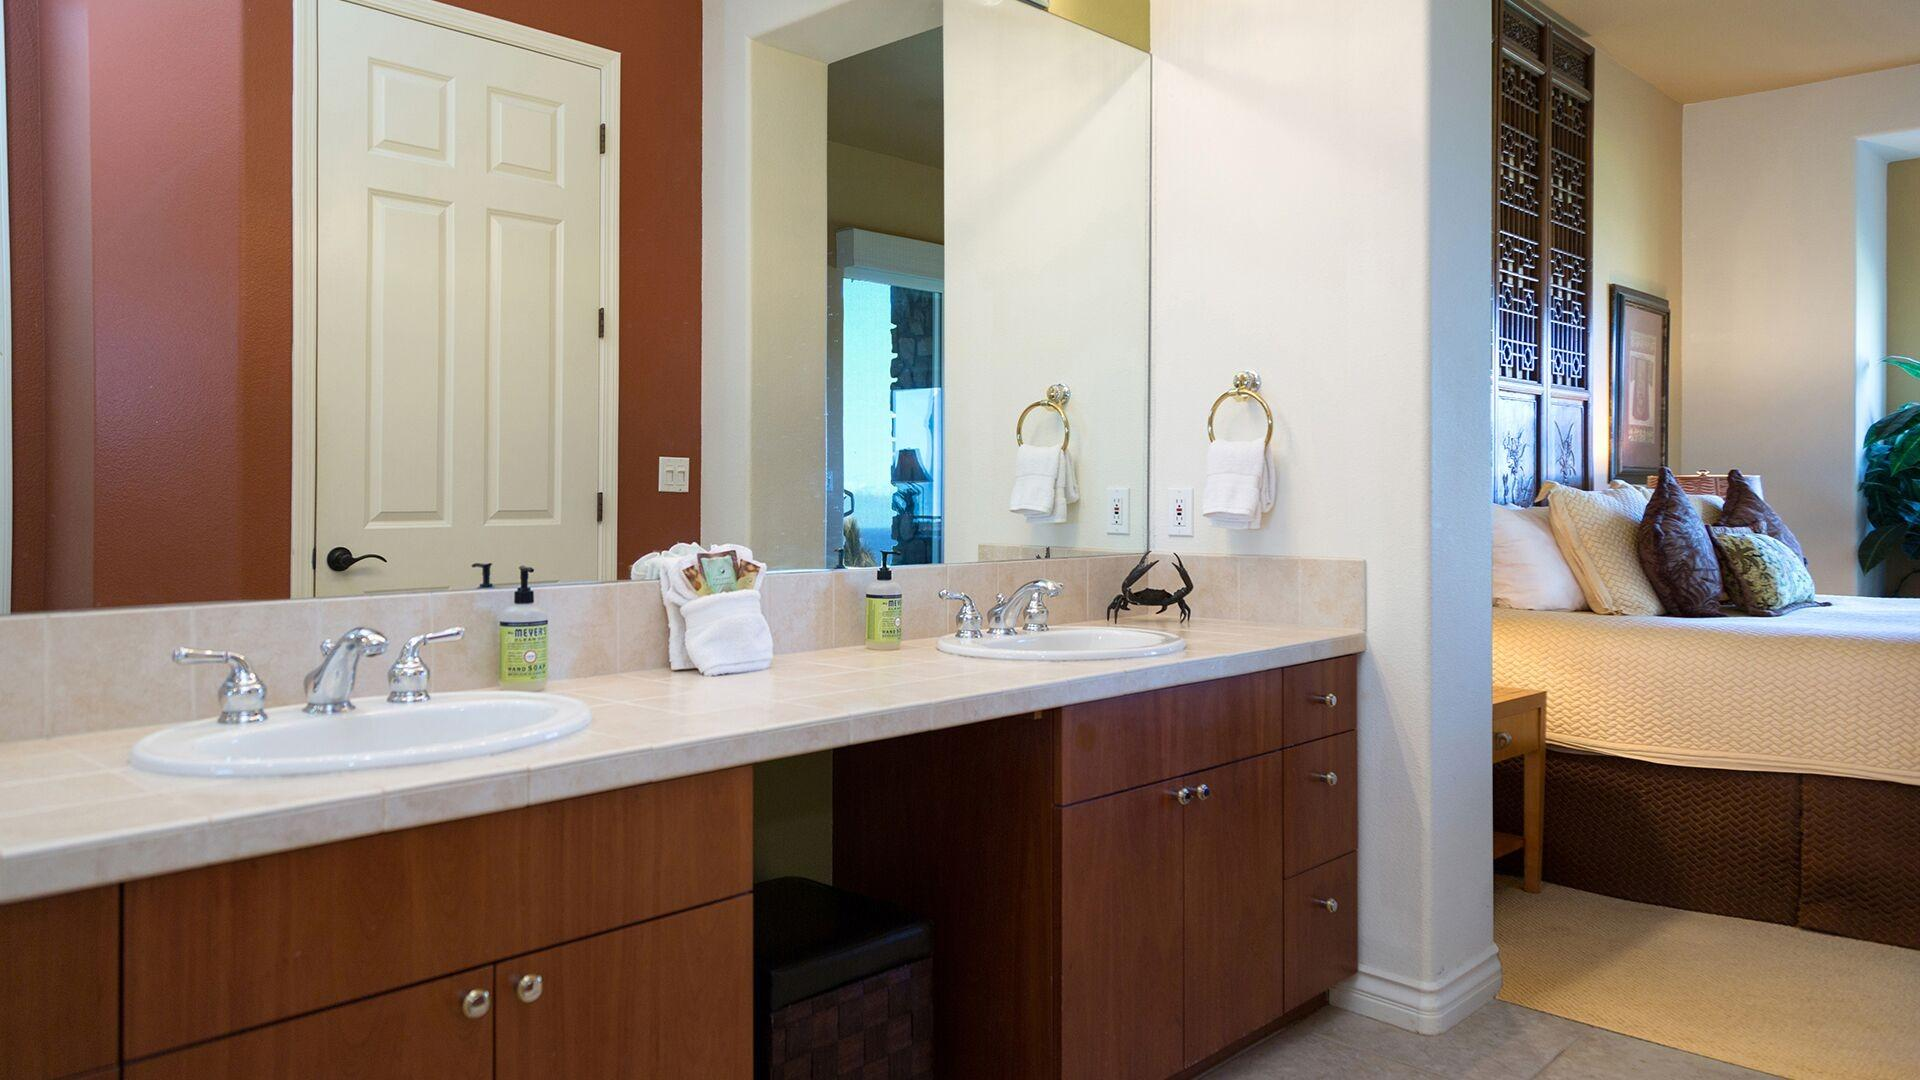 En-suite Master Bathroom with double vanities and conveniently leads to the Bedroom.